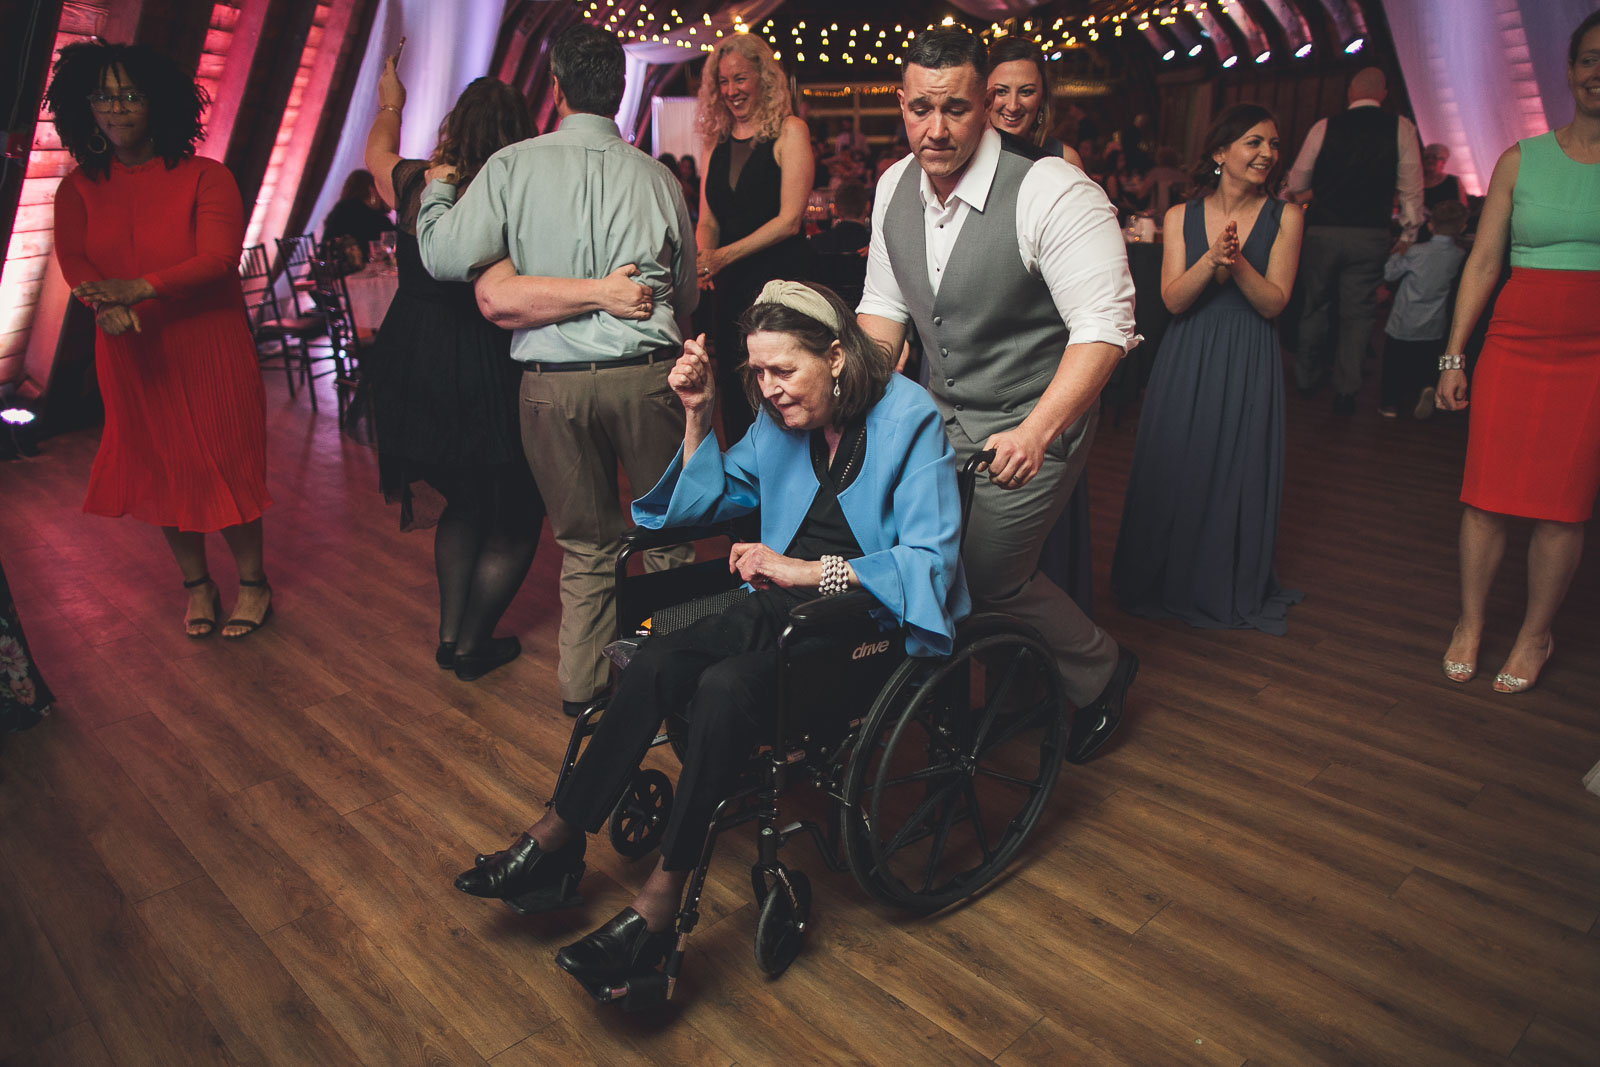 Wheel Chair Dance Floor Moves